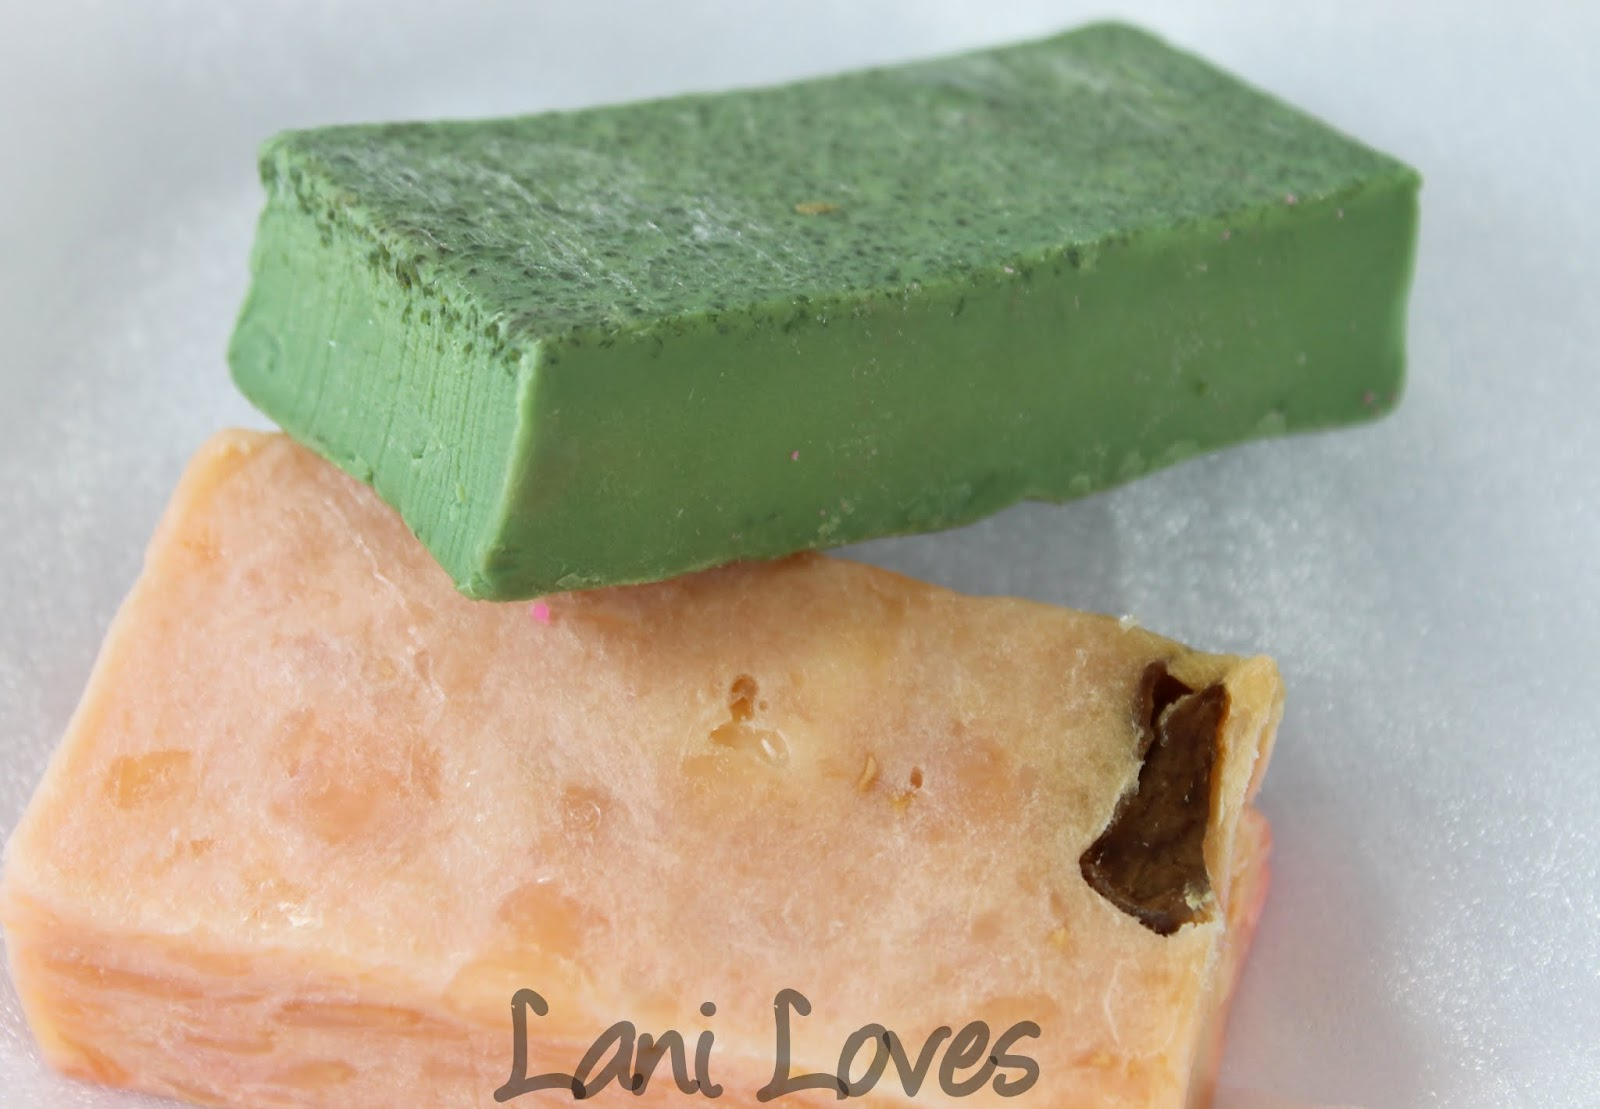 LUSH Parsley Porridge and Mangnificent soaps